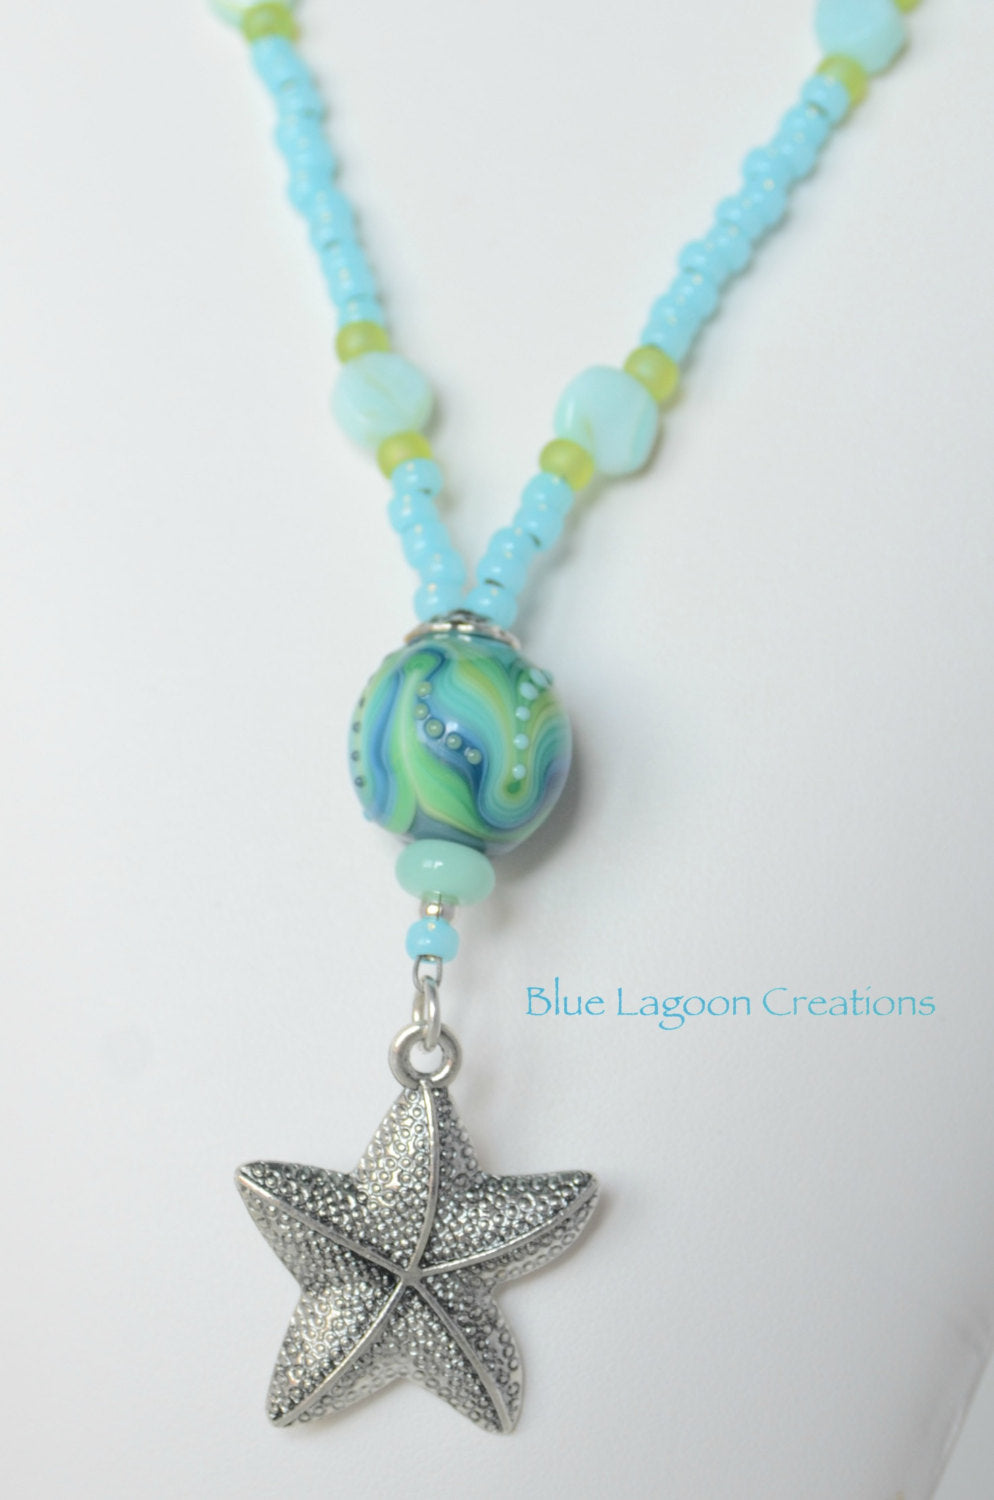 Green and Blue Starfish Pendant Necklace with Lampwork Bead by Michal Silberberg